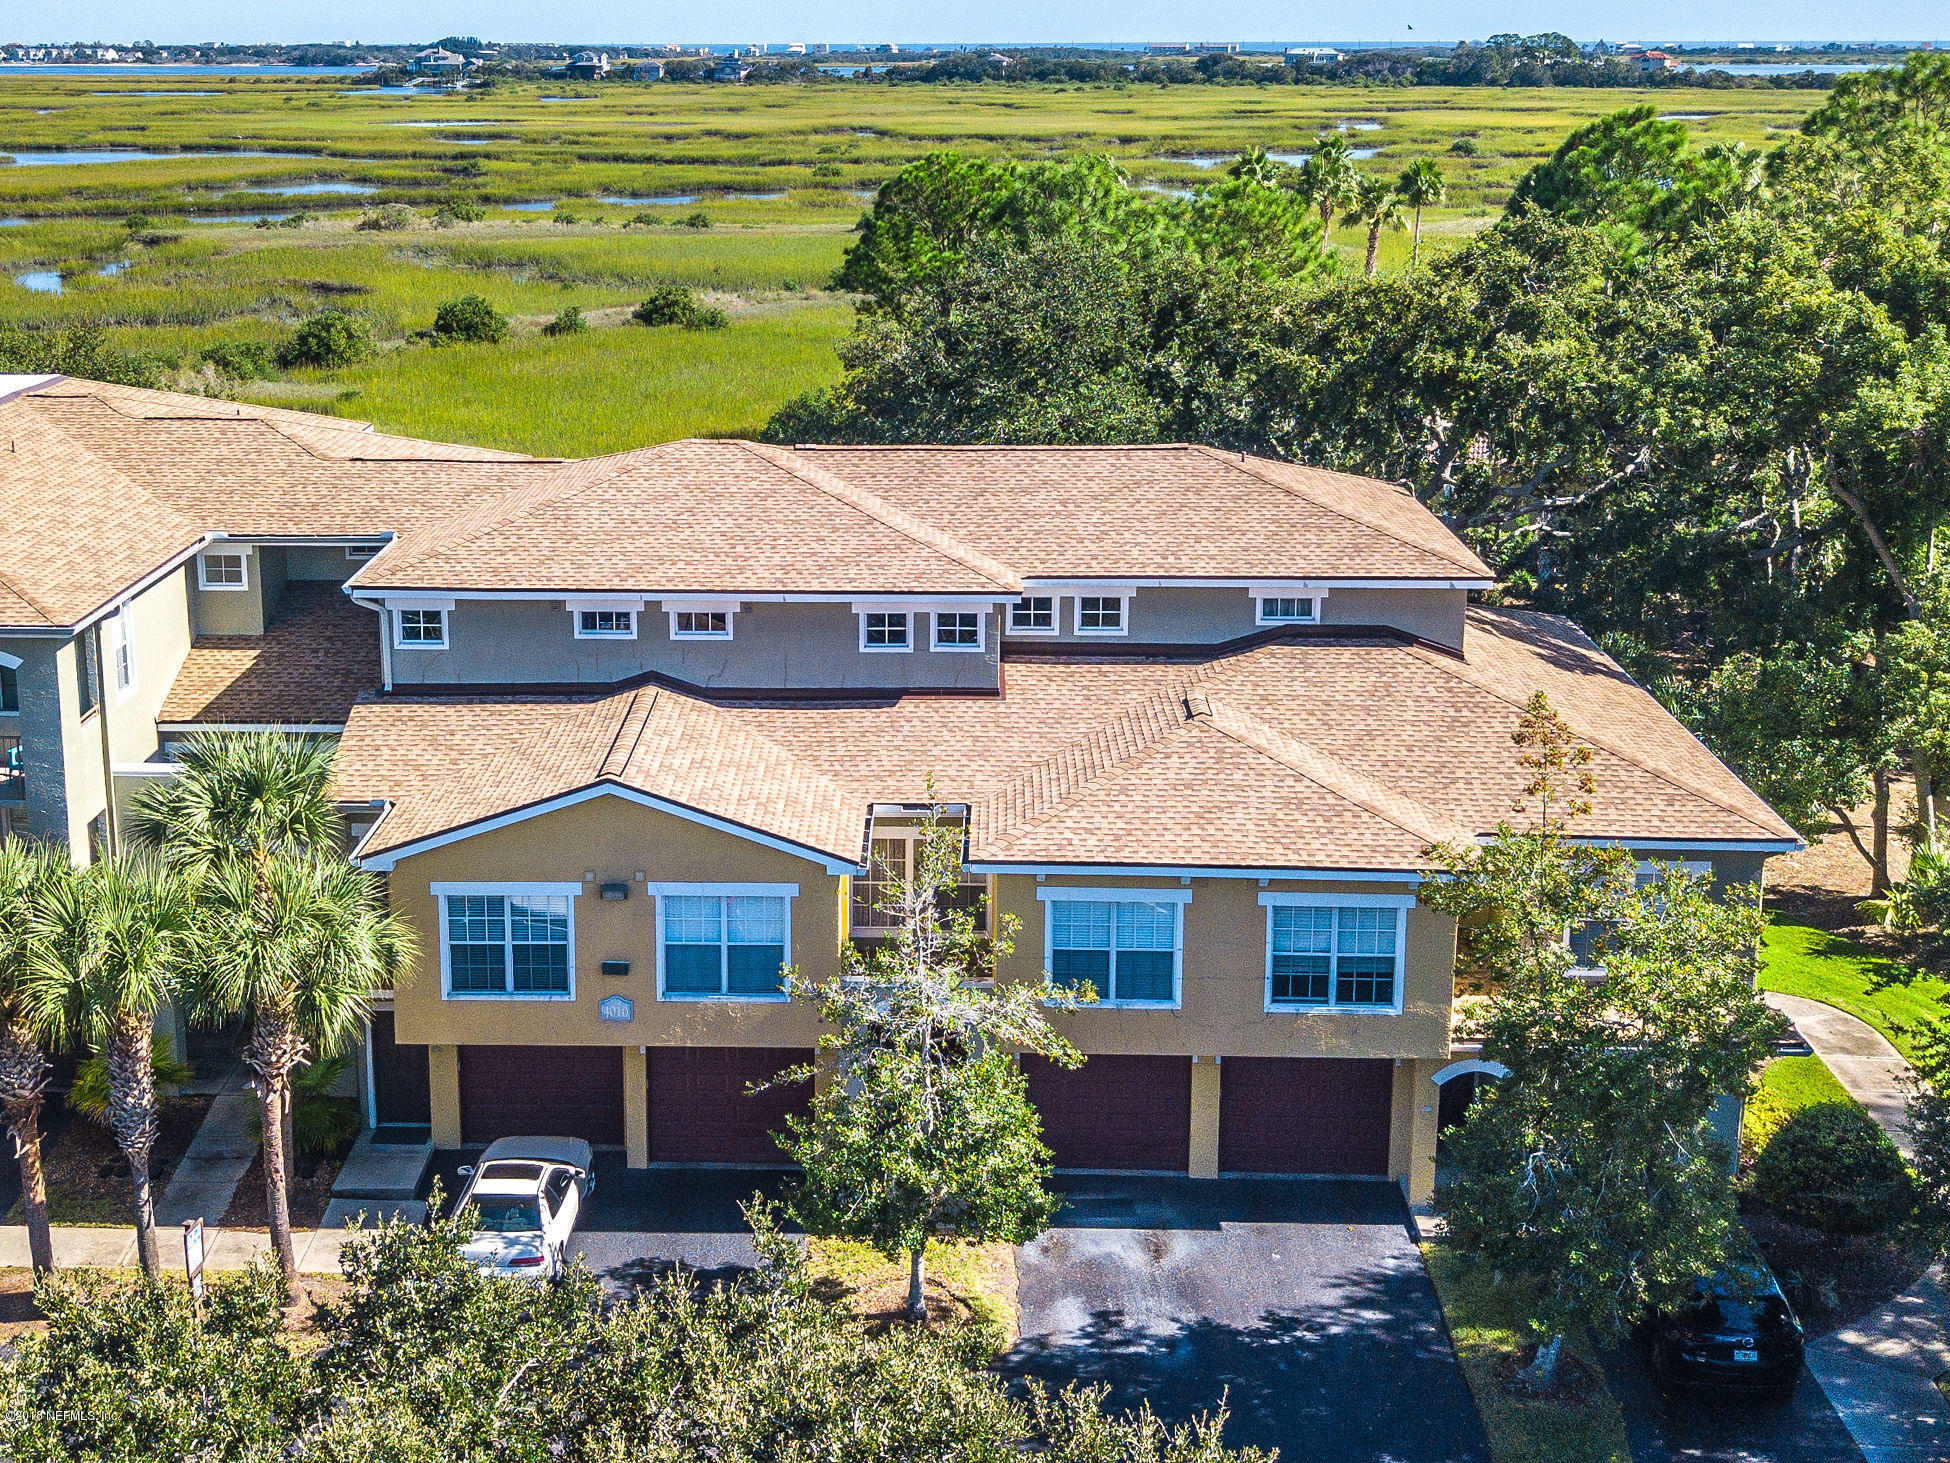 4010 GRANDE VISTA, ST AUGUSTINE, FLORIDA 32084, 1 Bedroom Bedrooms, ,1 BathroomBathrooms,Residential - condos/townhomes,For sale,GRANDE VISTA,965056